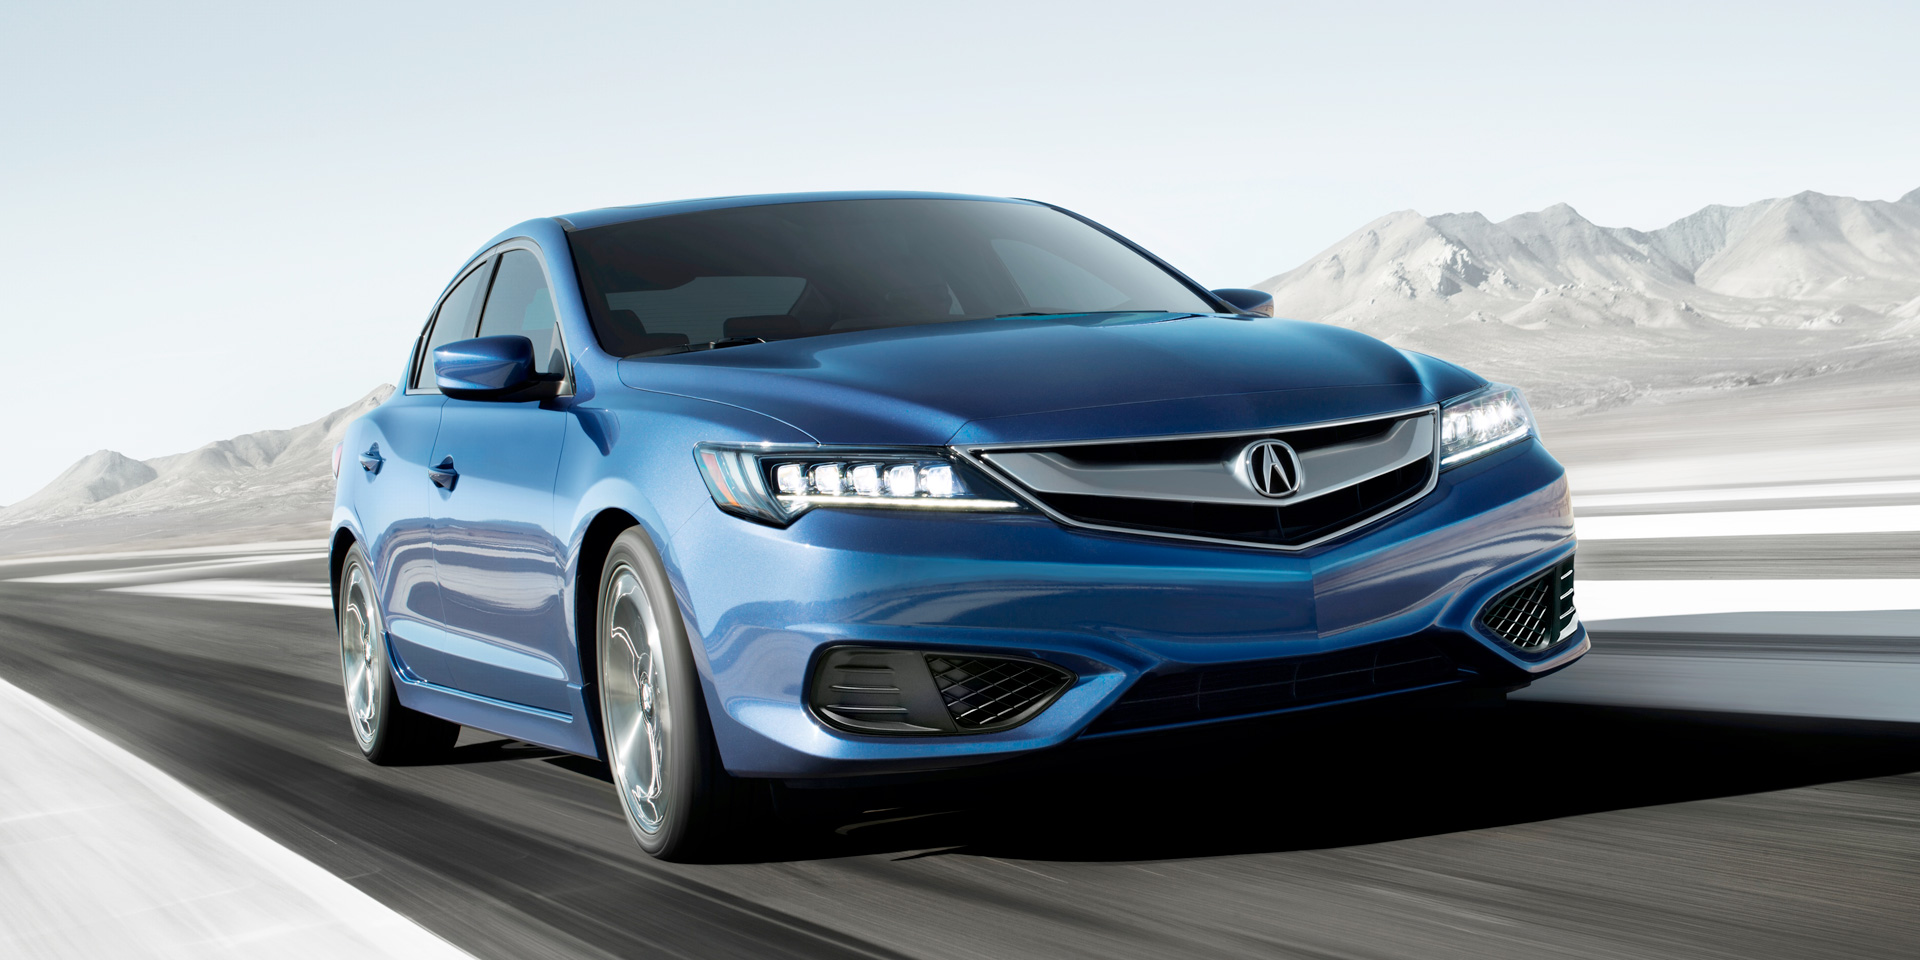 Southern Motors Acura >> 2019 - Acura - ILX - Vehicles on Display | Chicago Auto Show